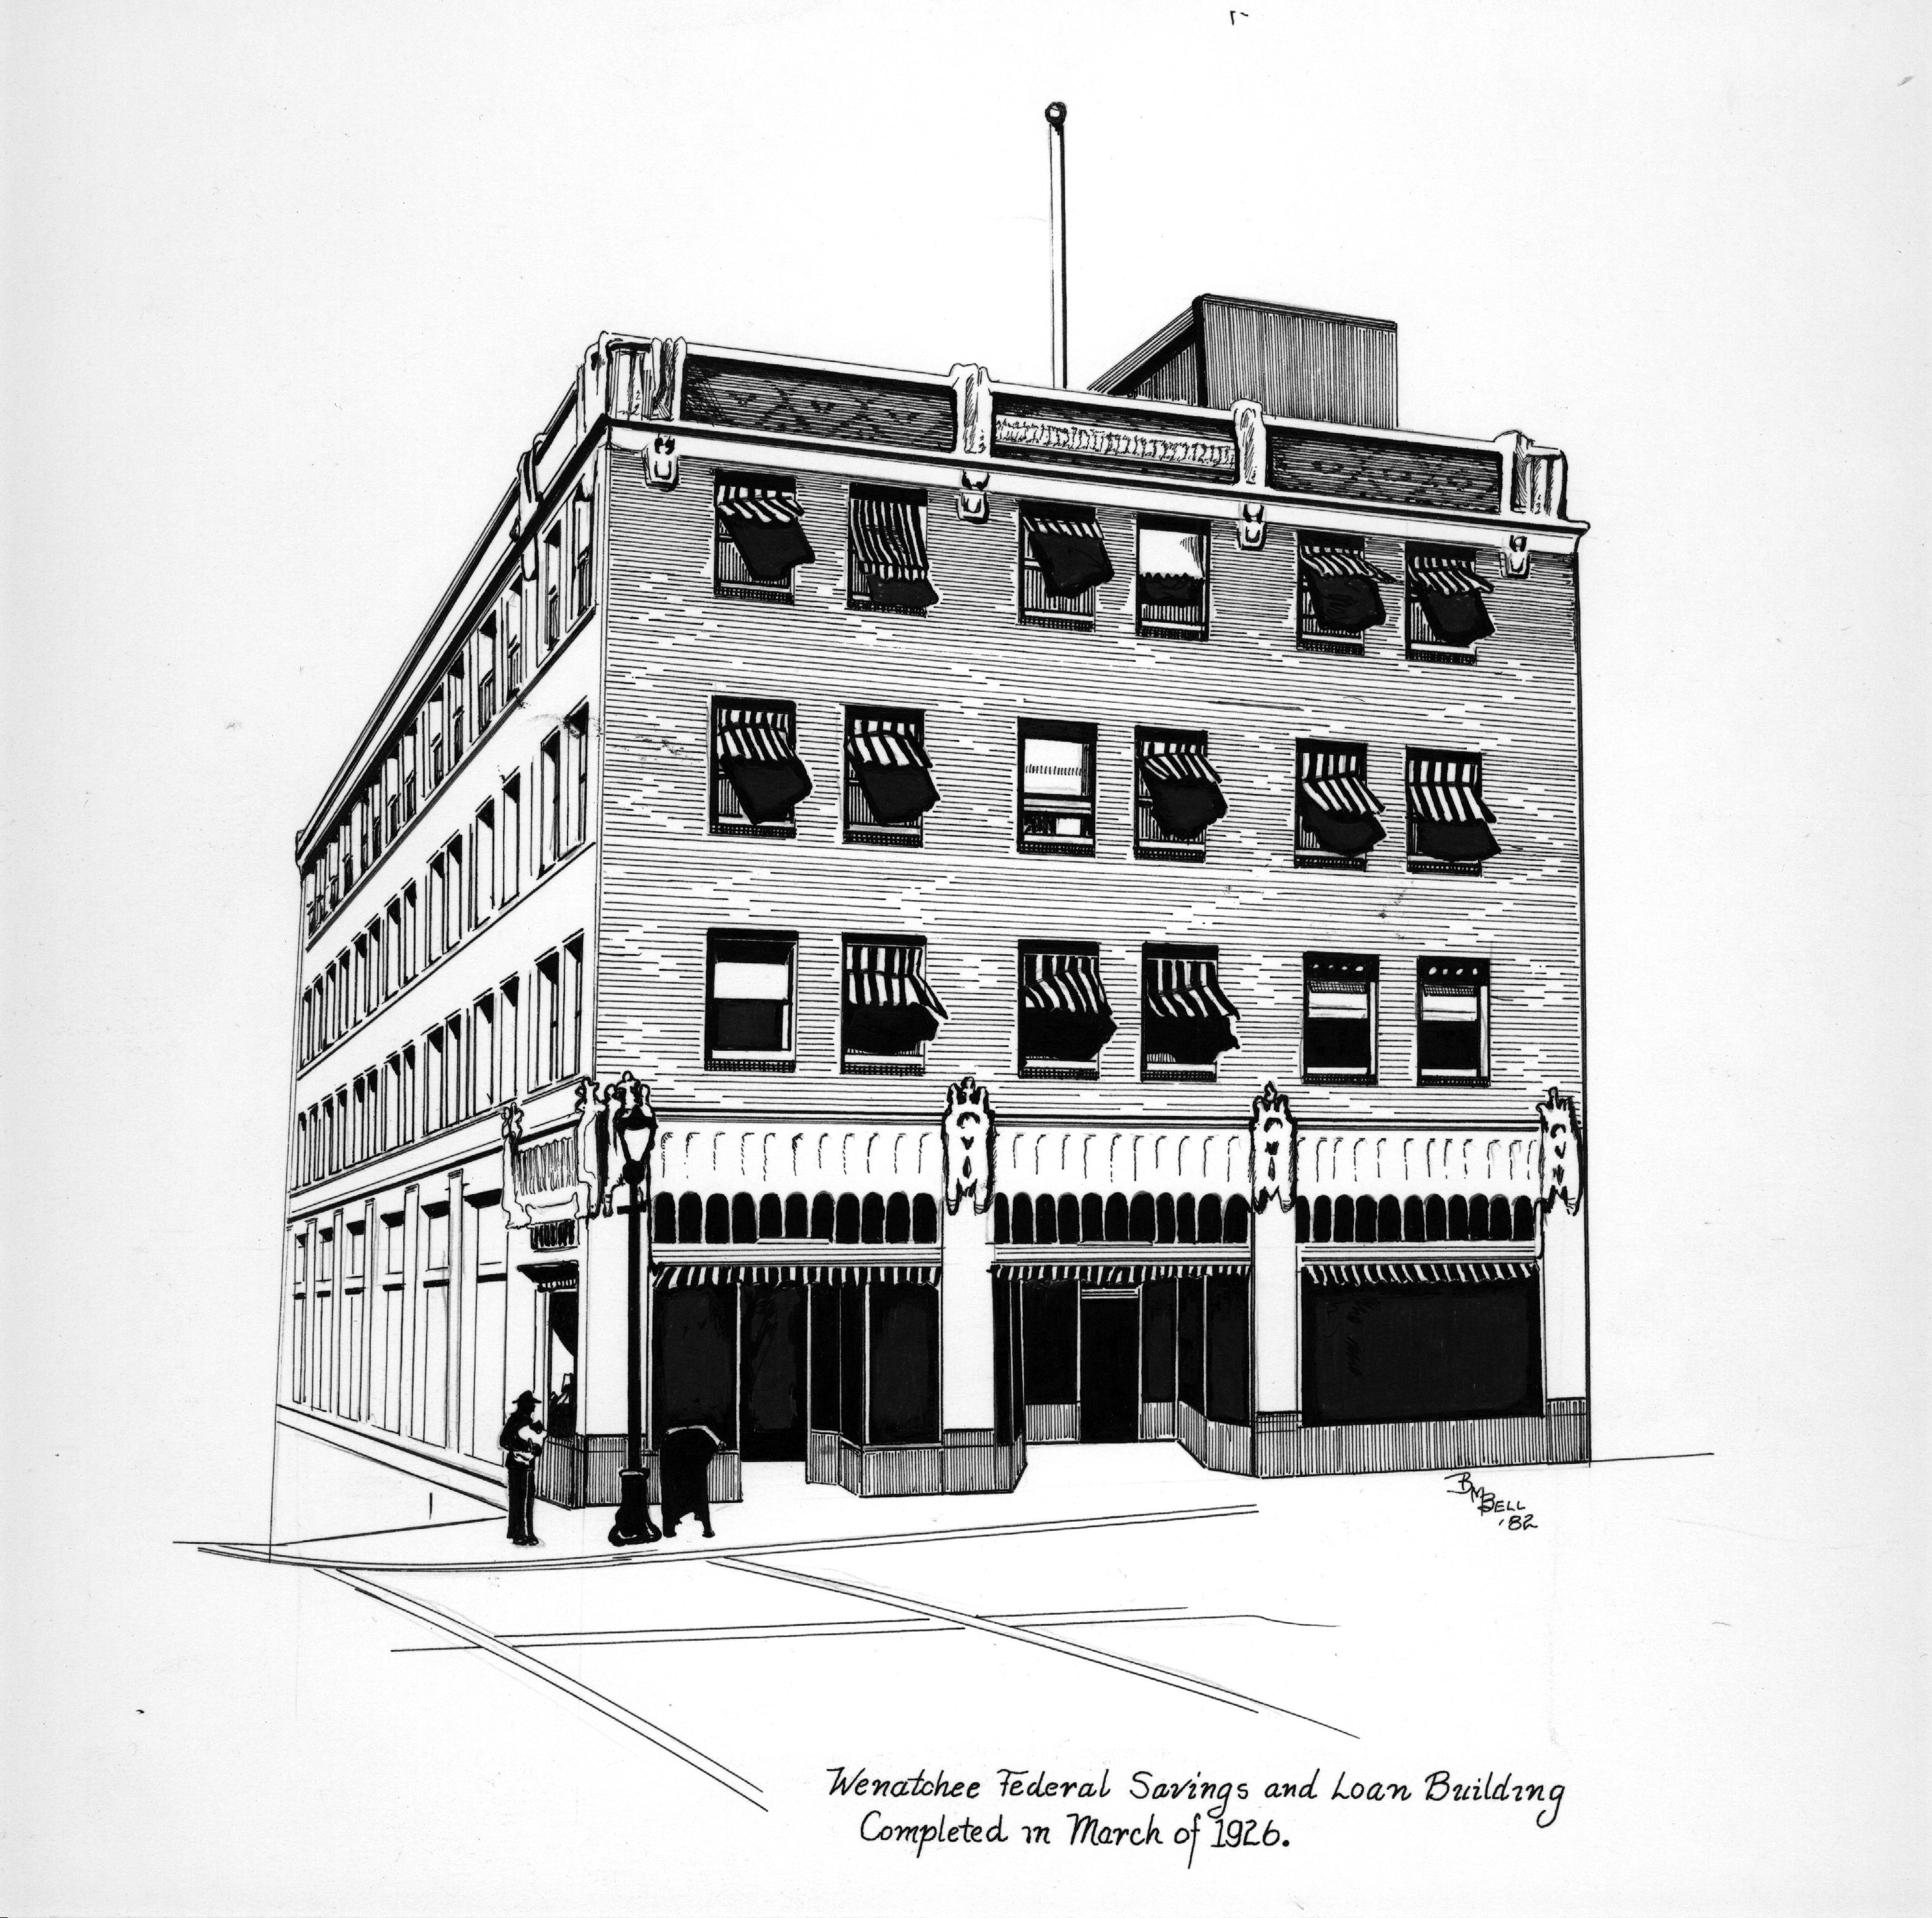 The Wenatchee Federal Savings & Loan Building illustration by Betty Bell.